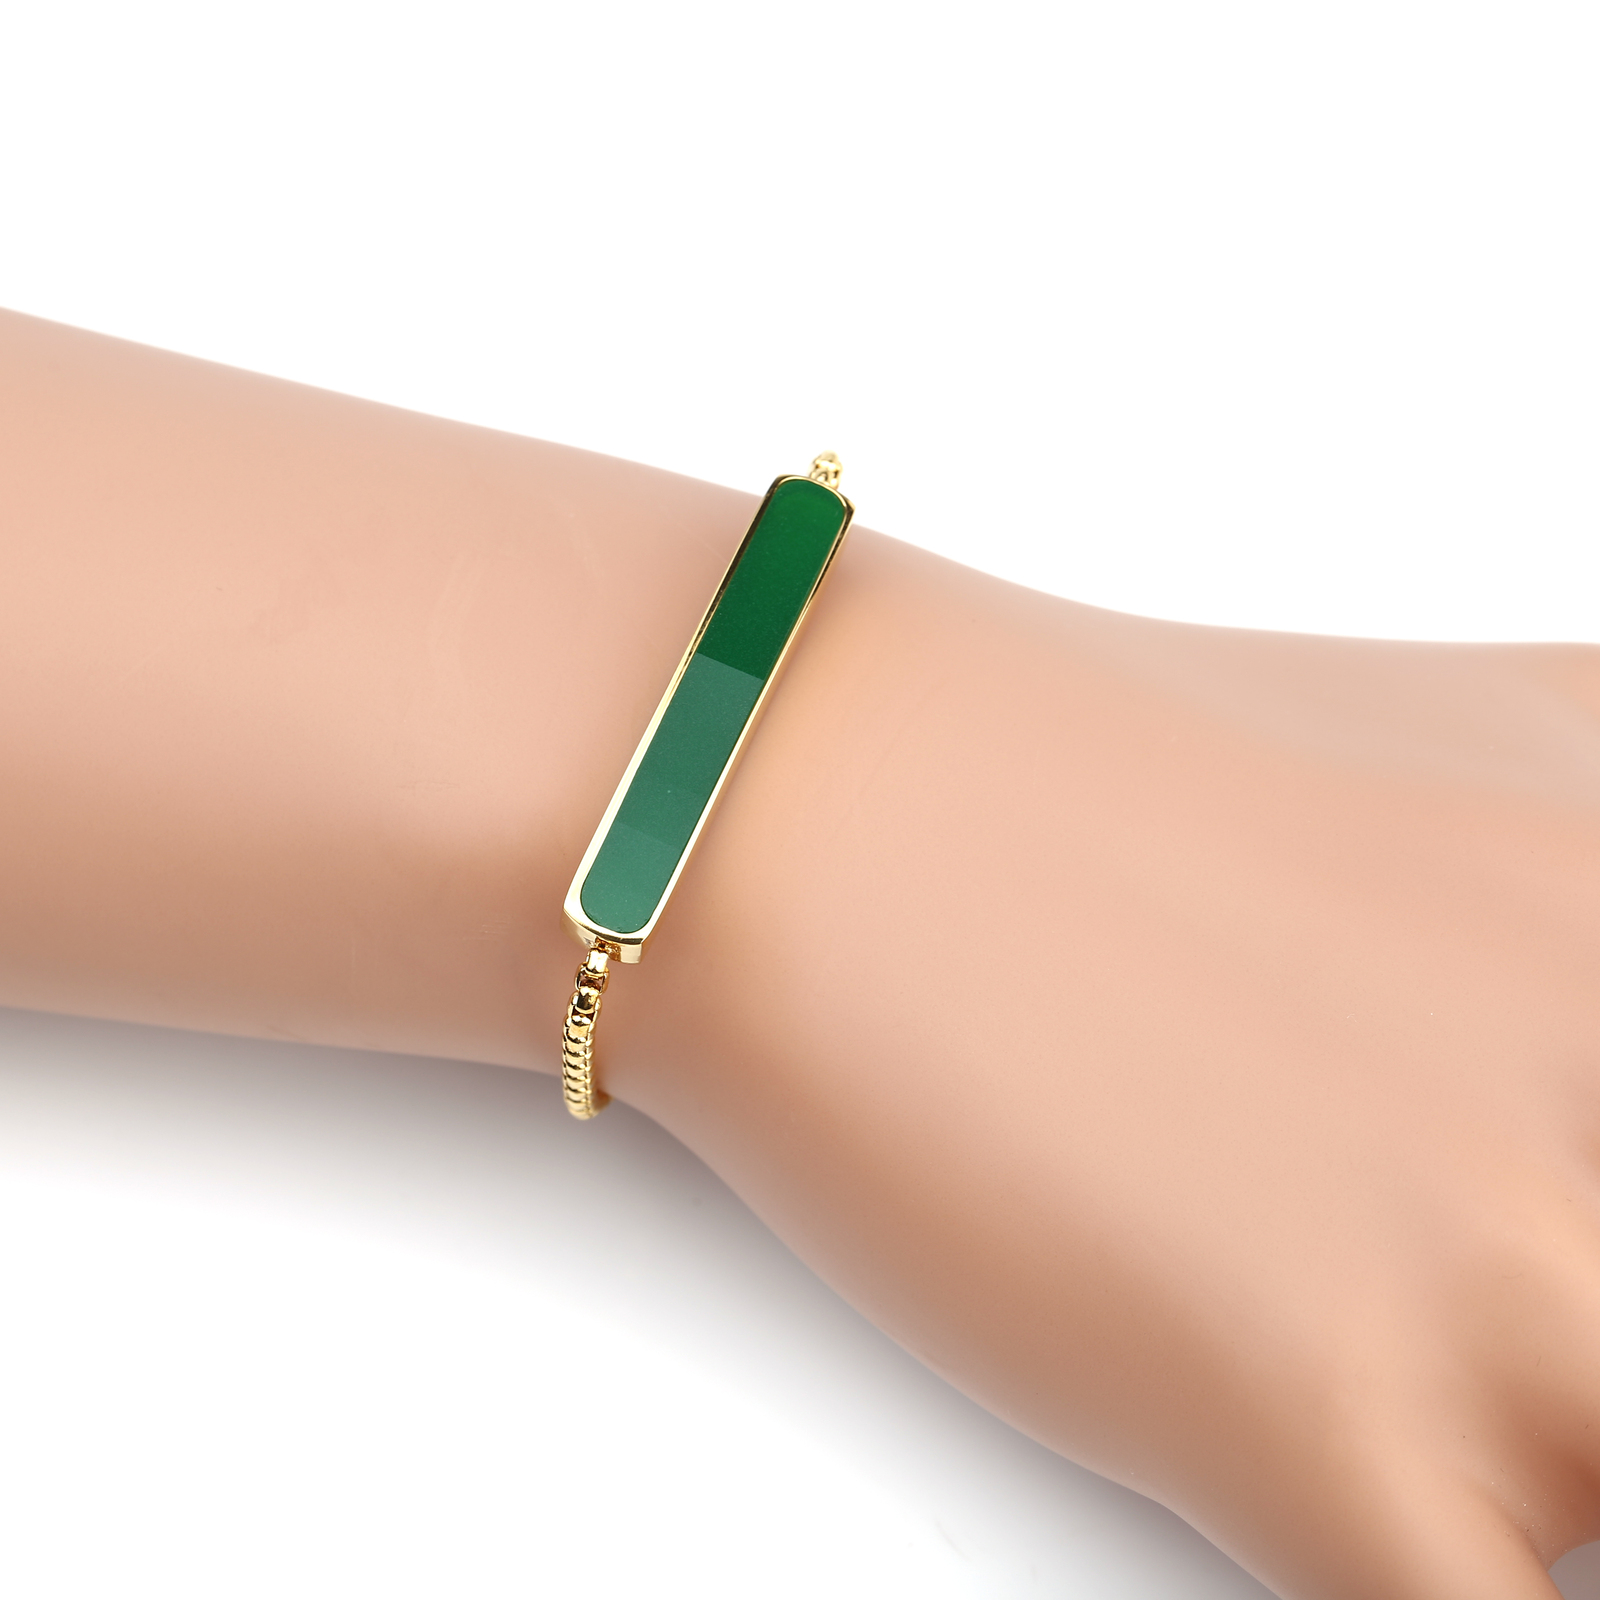 UNITED ELEGANCE Gold Tone Designer Bolo Bar Bracelet With Emerald Green Inlay